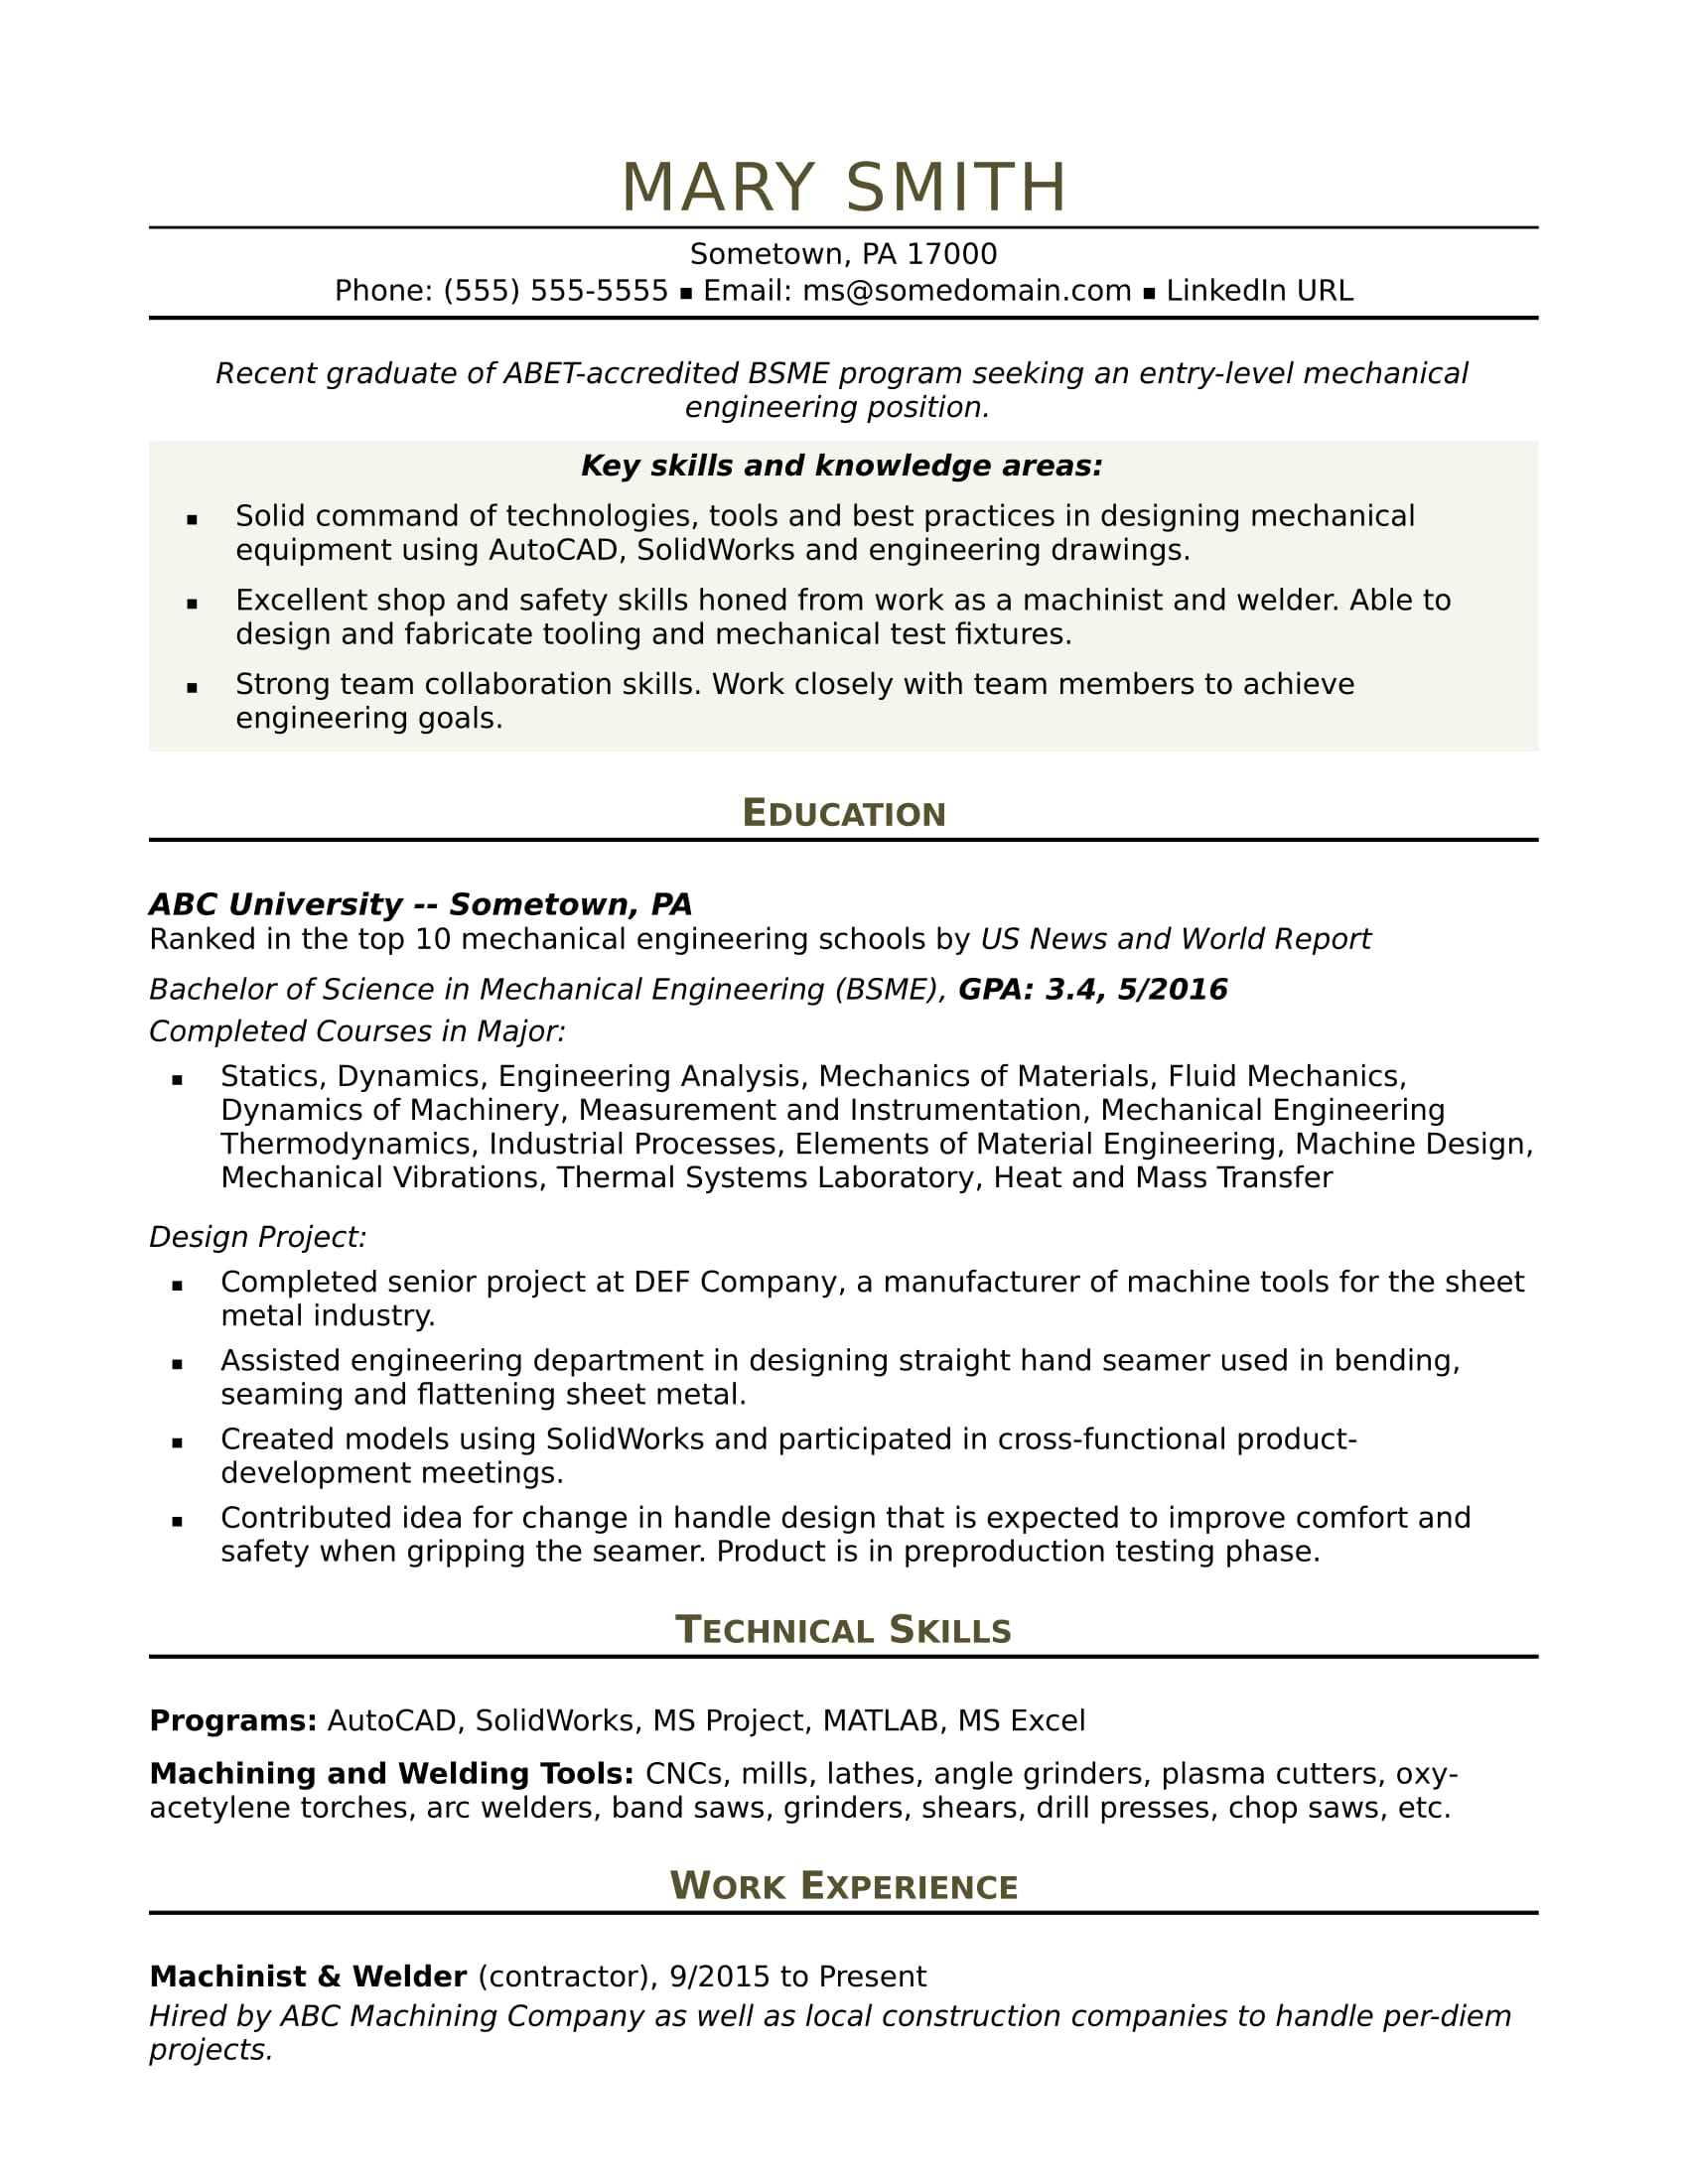 Resume Format For Design Engineer In Mechanical Sample Resume For An Entry Level Mechanical Engineer